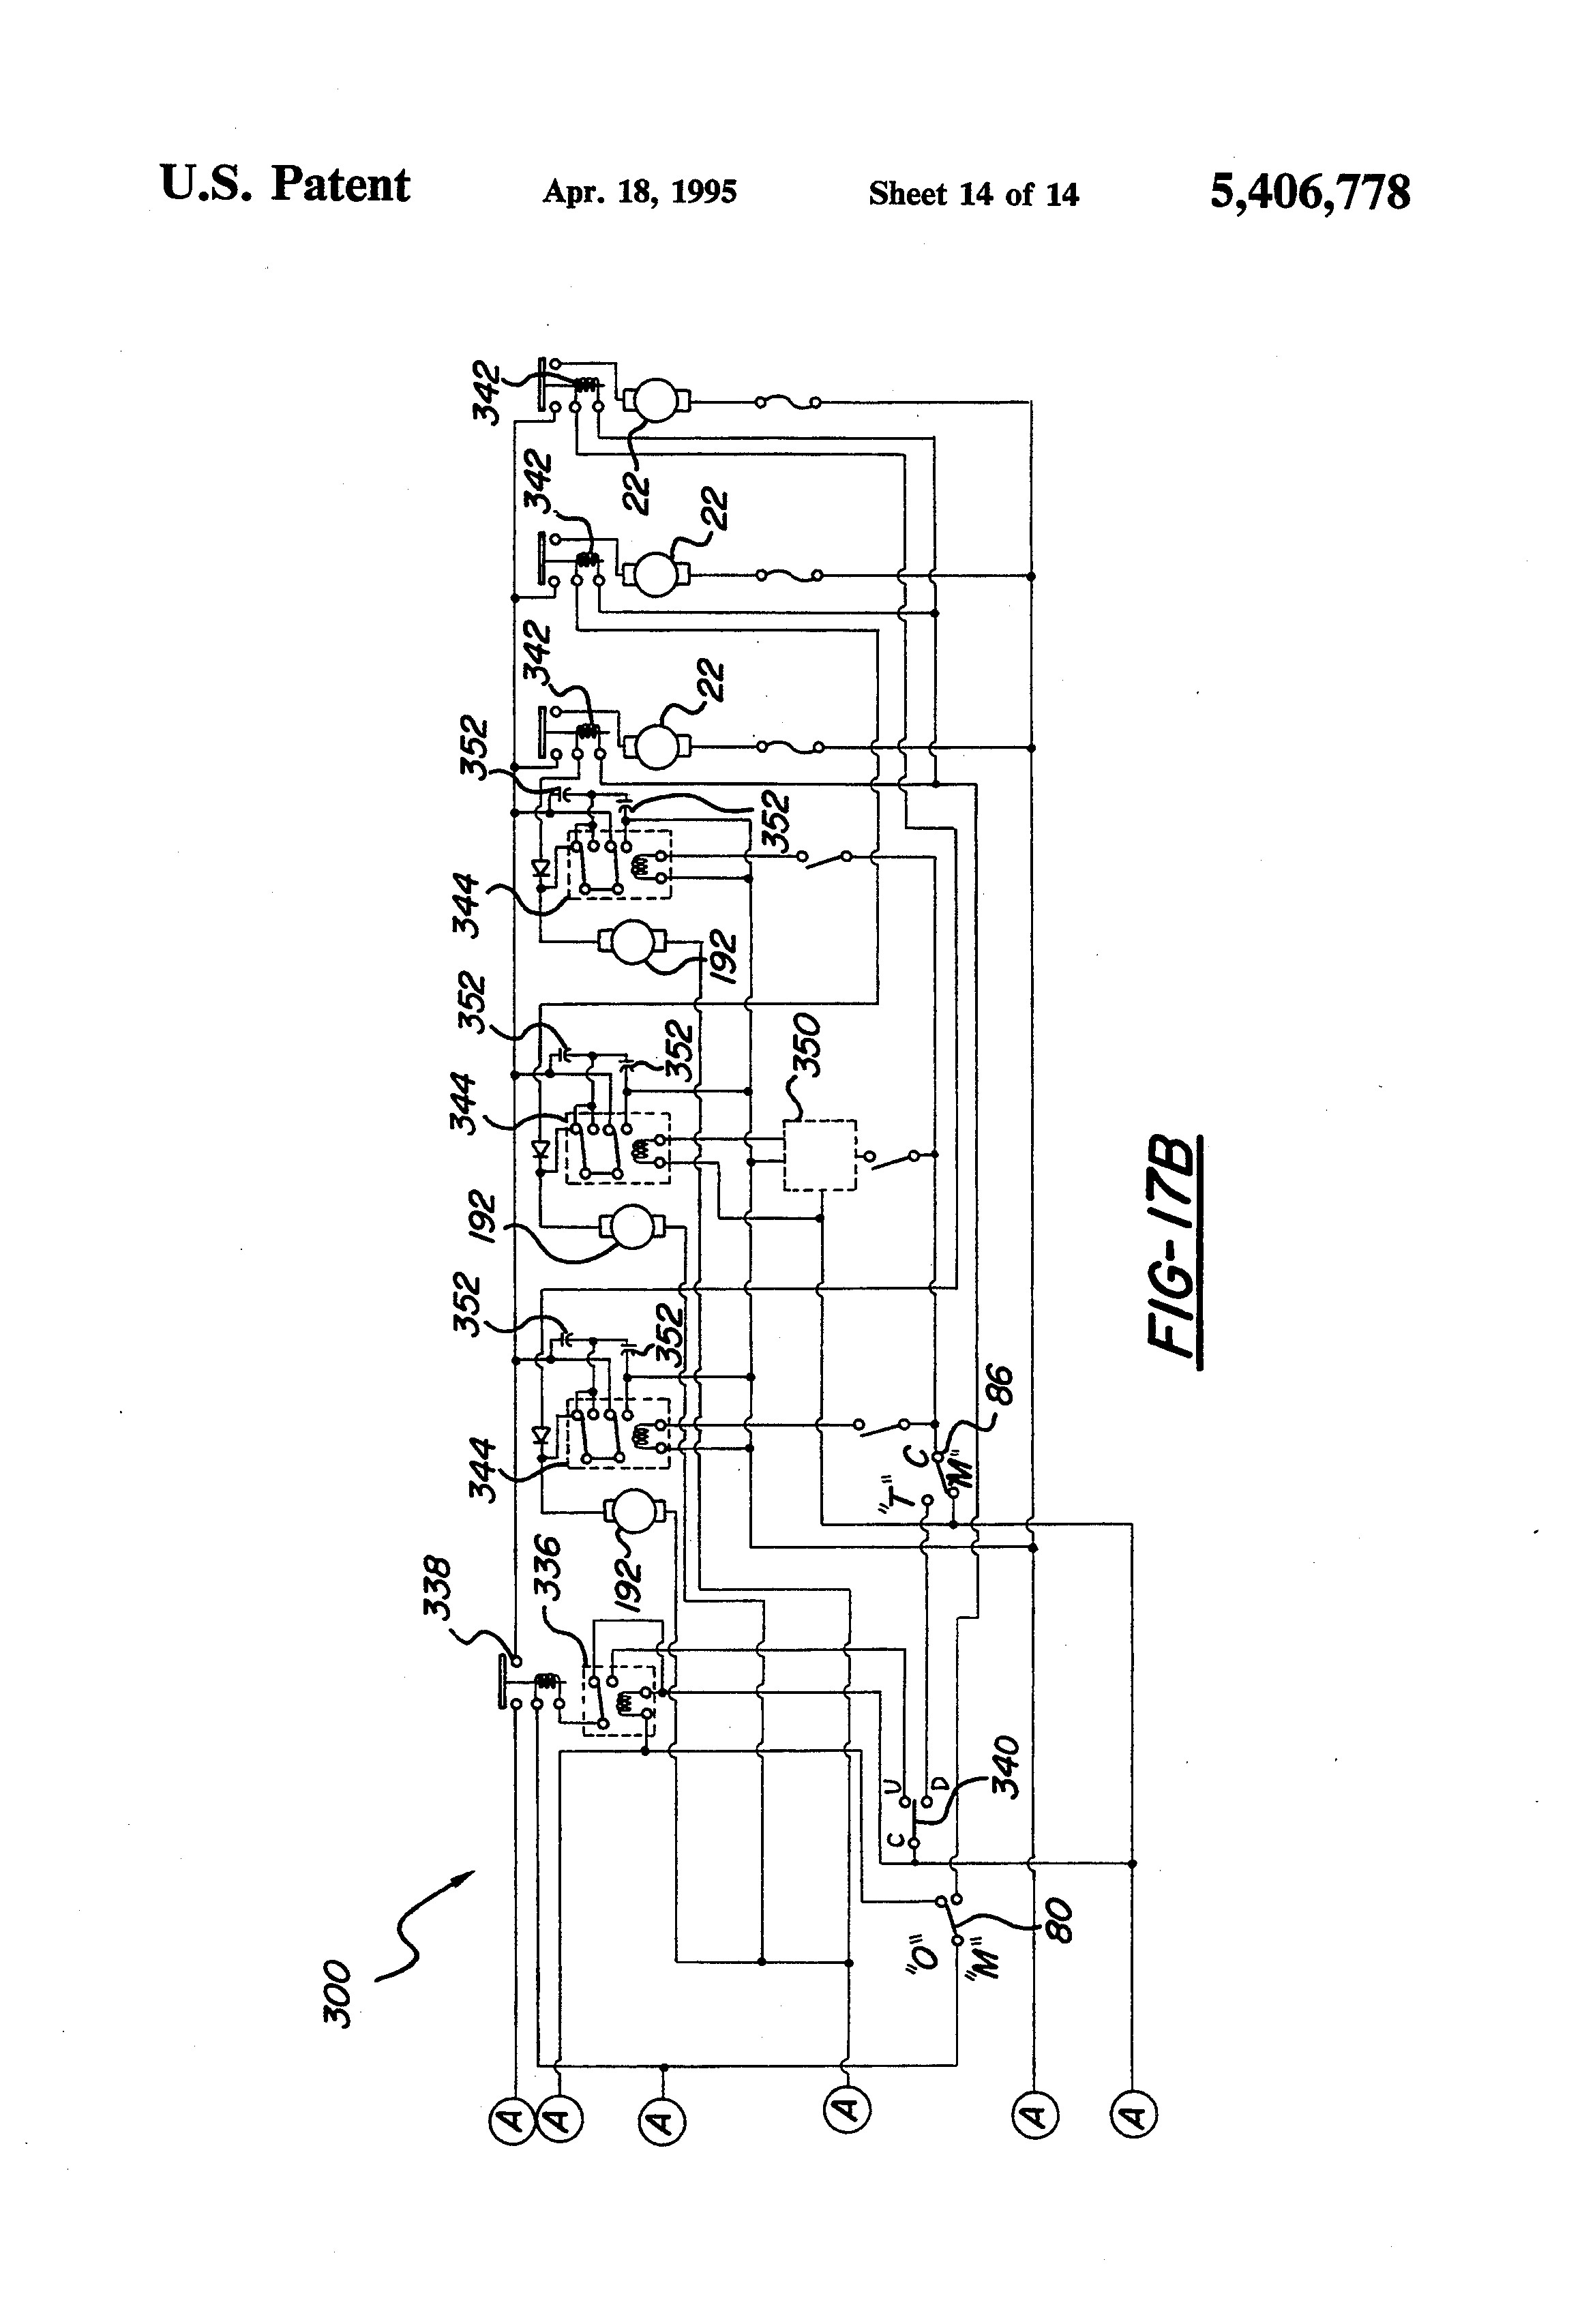 Dixie Chopper Parts Diagram Perfect Dixie Chopper Wiring Diagram 94 Wiring Diagram for 3 Port Of Dixie Chopper Parts Diagram